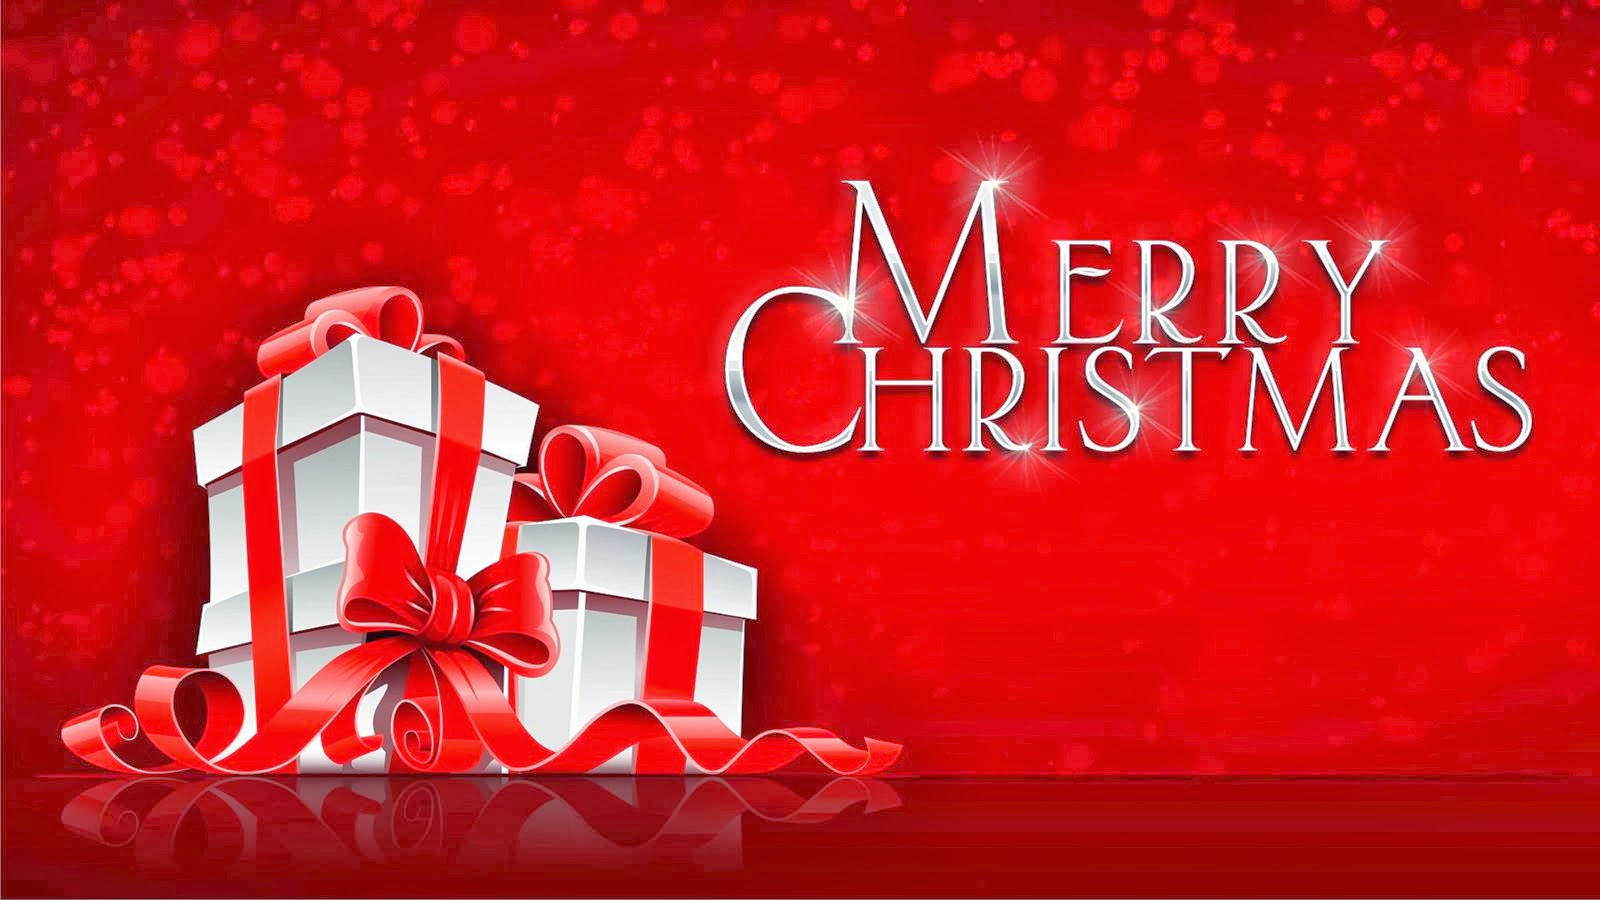 christmas day wallpapers - merry christmas greetings cards